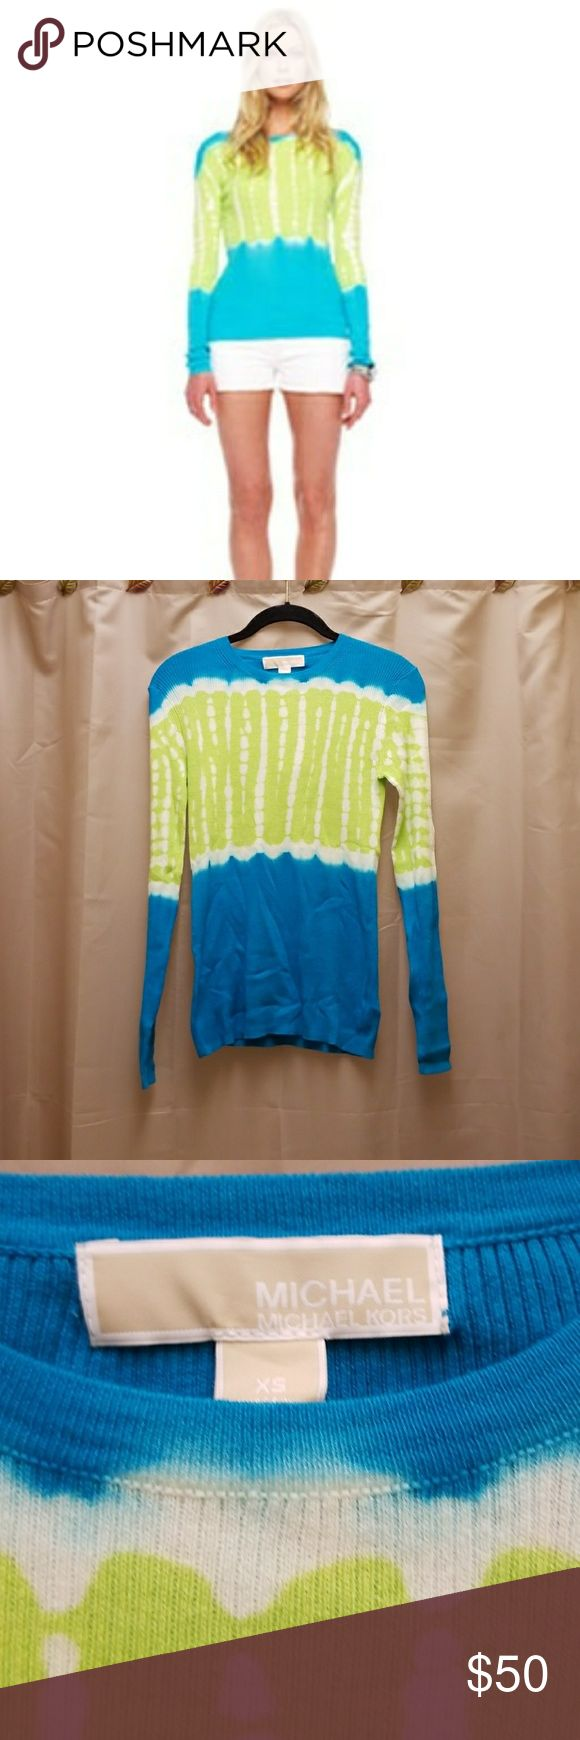 Michael Kors Ribbed Tie Dye Sweater Blue Green XS New With Tags Michael Kors  Tie Dye Sweater Lightweight  Beautiful Neon Colors of Blue and Green  Colors are a cross between Stock photo and mine.. Though, more neon than mine Tag calls it Tile Blue Great for any season Size XS and has stretch Only selling because I keot the 2 similar ones I own.  Ask Questions  Bundle and save Michael Kors Tops